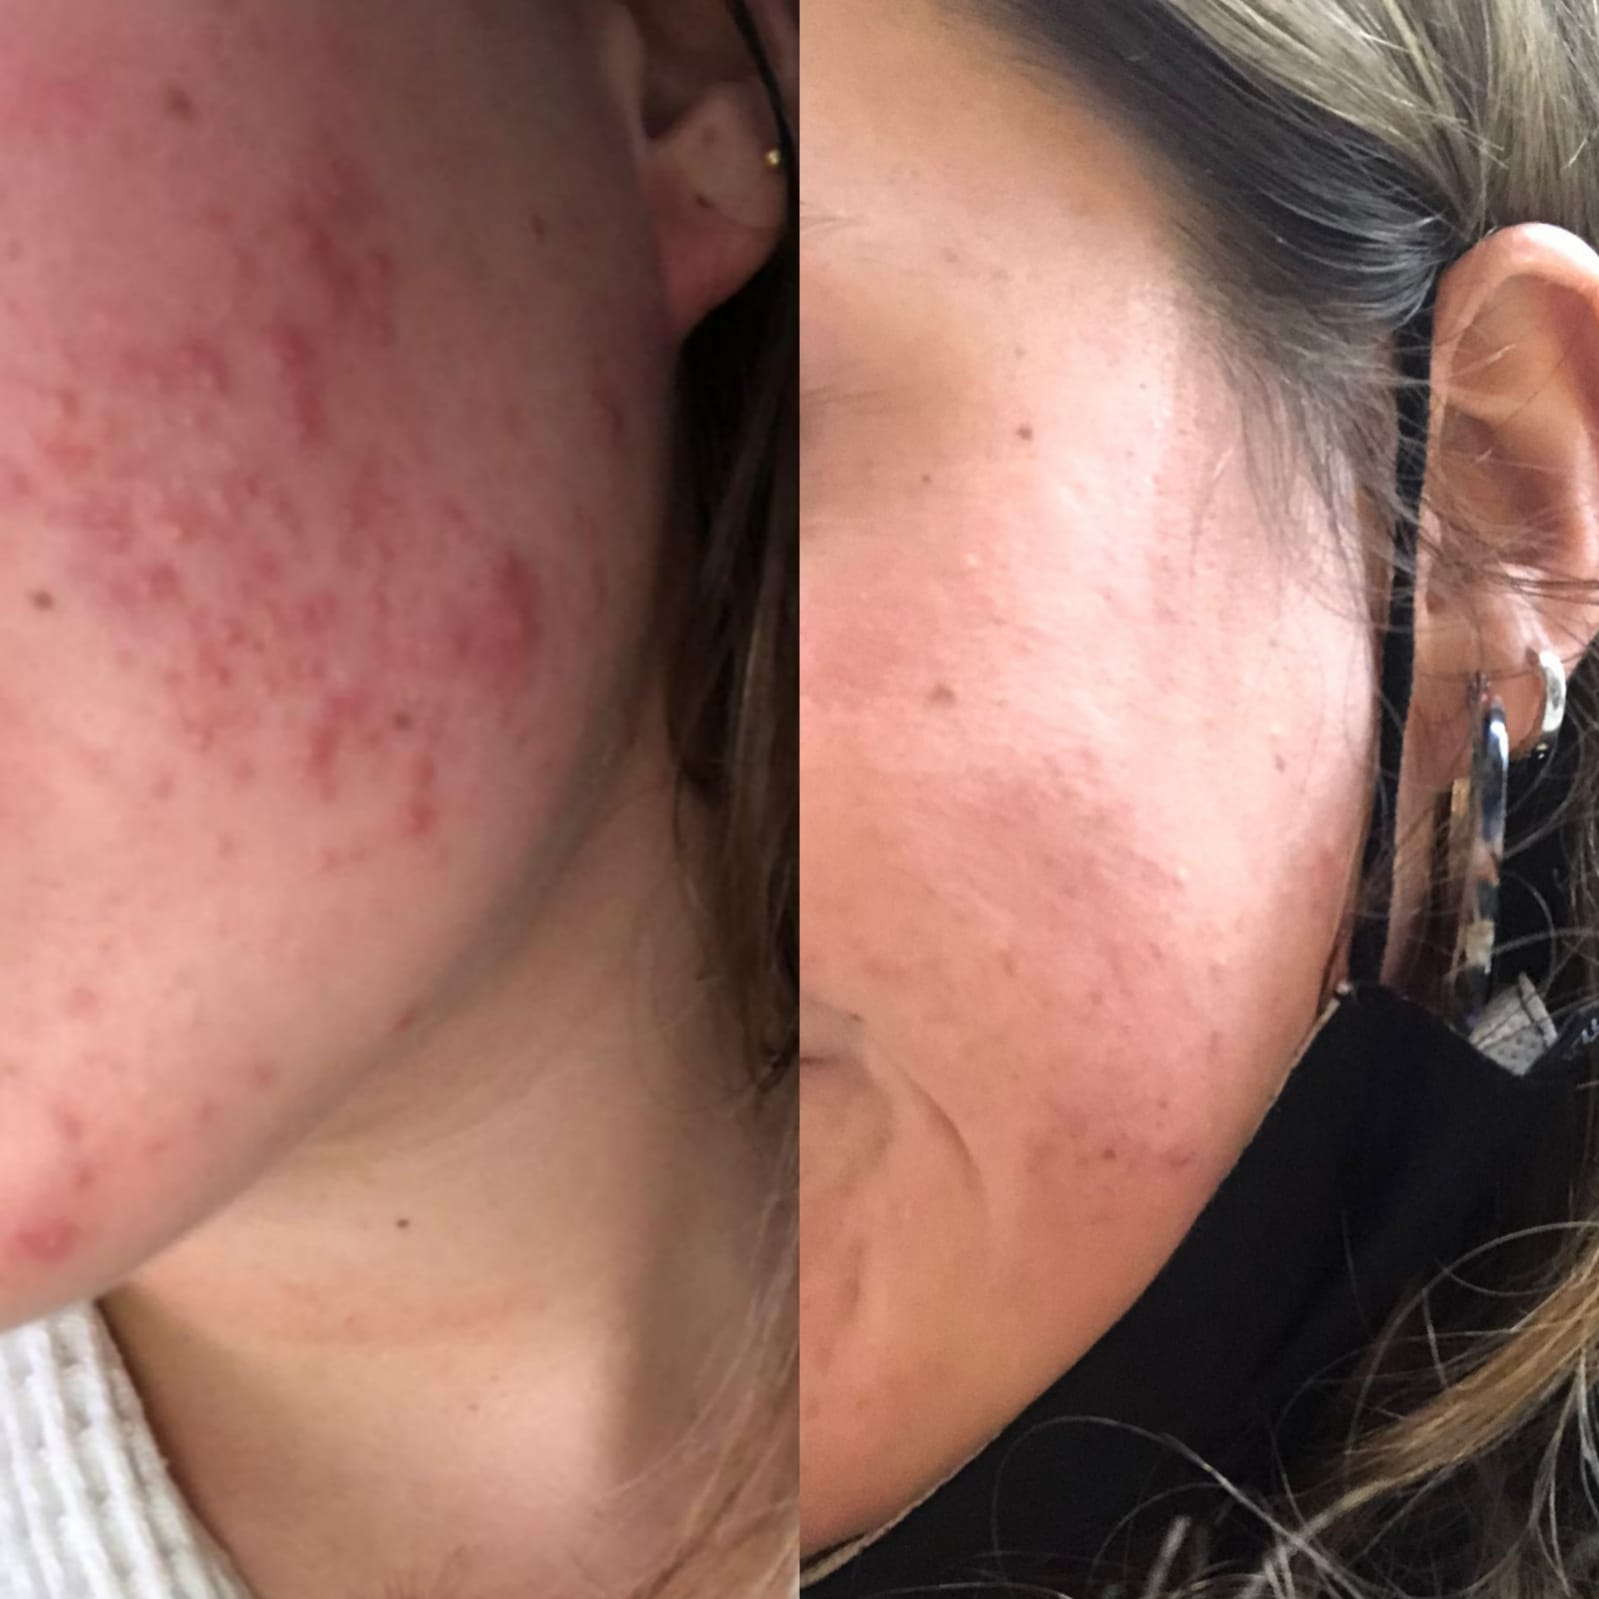 Skin transformation in a month. Results for acne treatment that works, cleared acne, inflammation has dissapeared and spots have been almost cleared